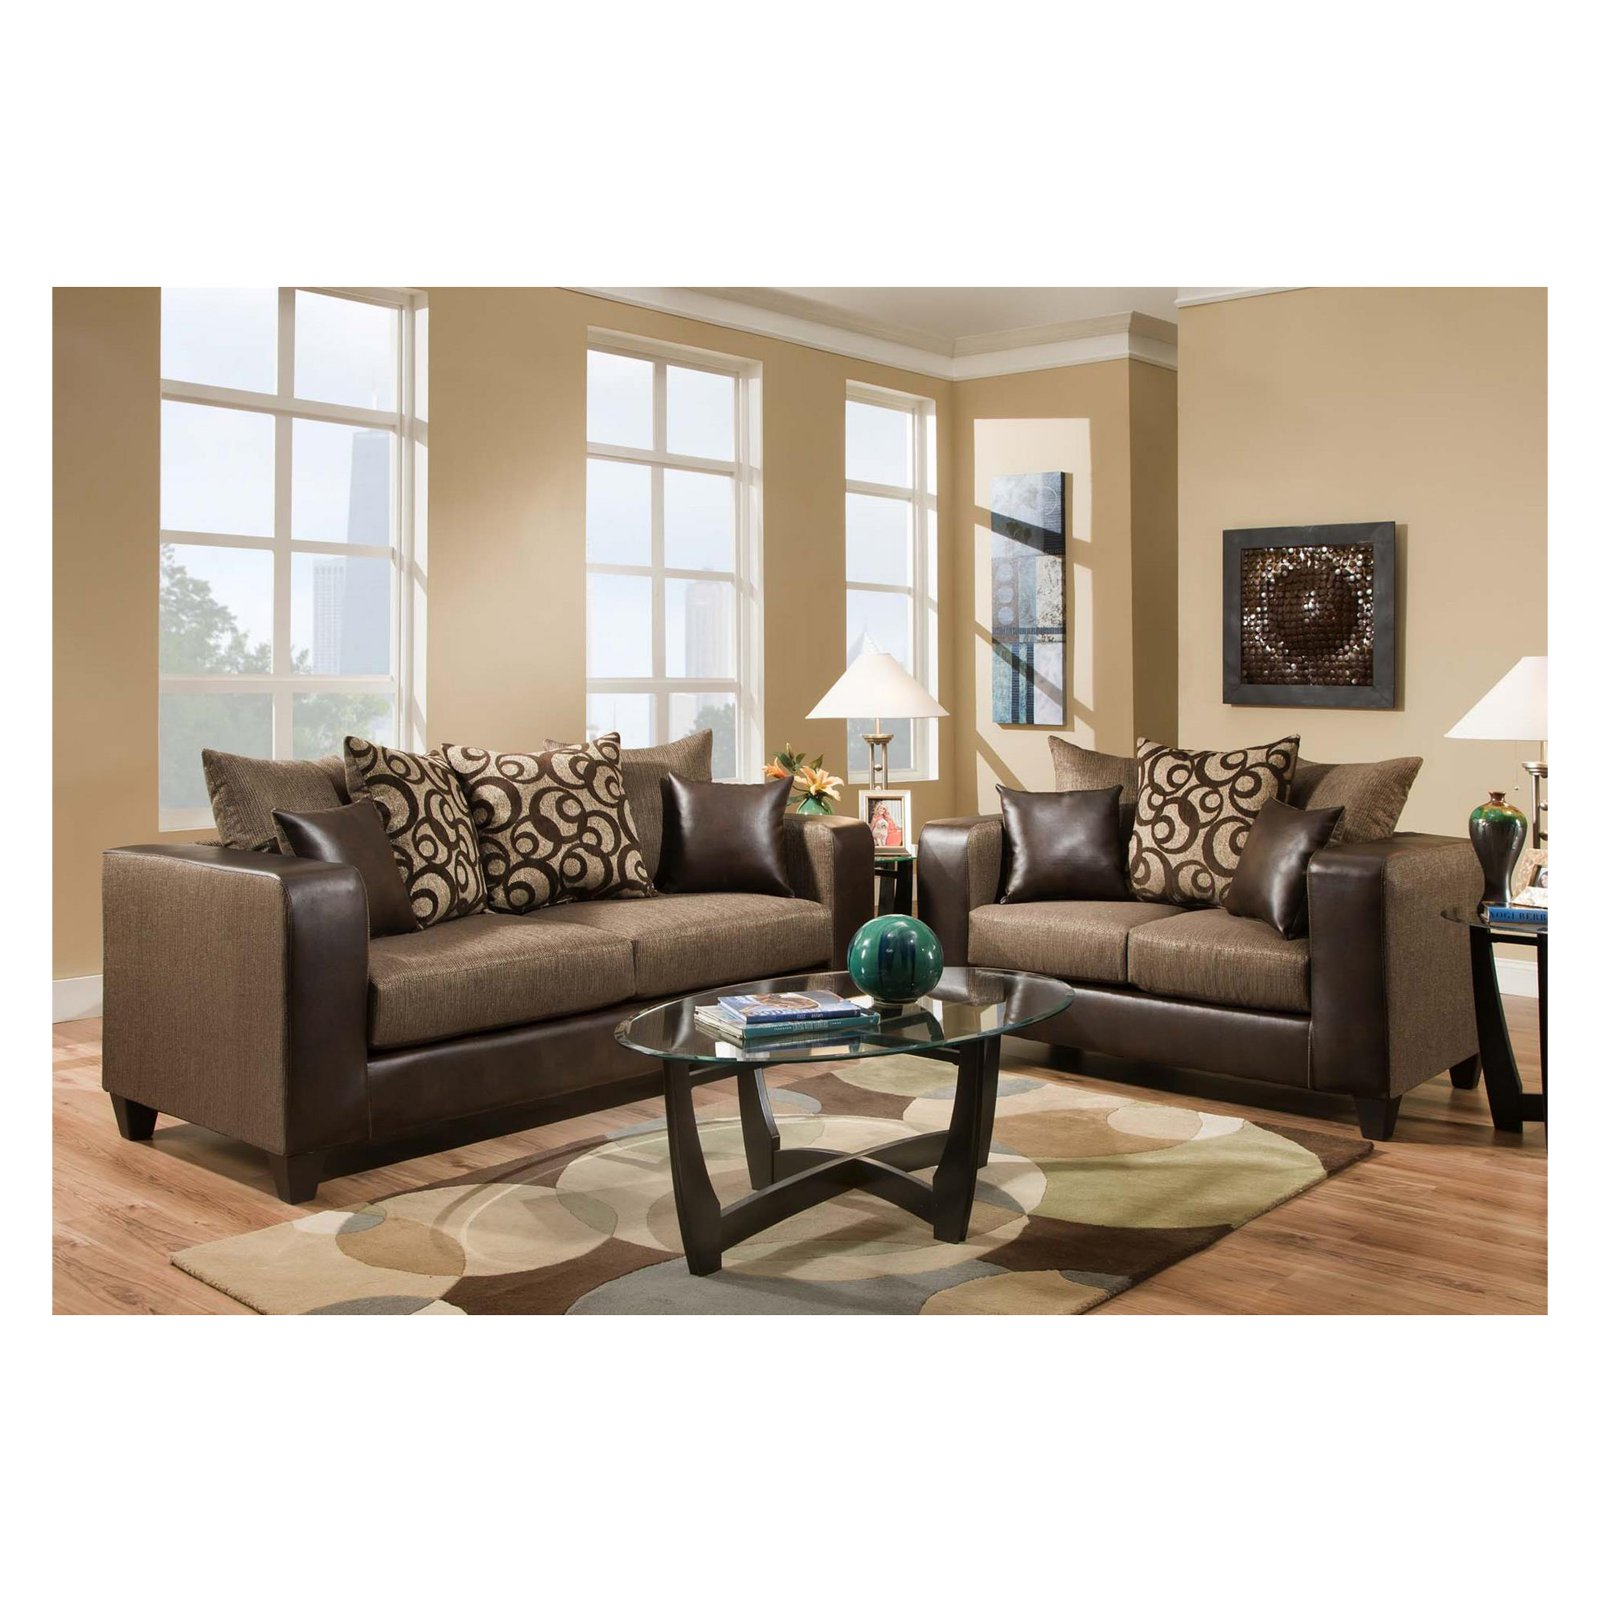 cheap sofa sets under 200 sofas scotland living room walmart com product image flash furniture riverstone object chenille loveseat and set